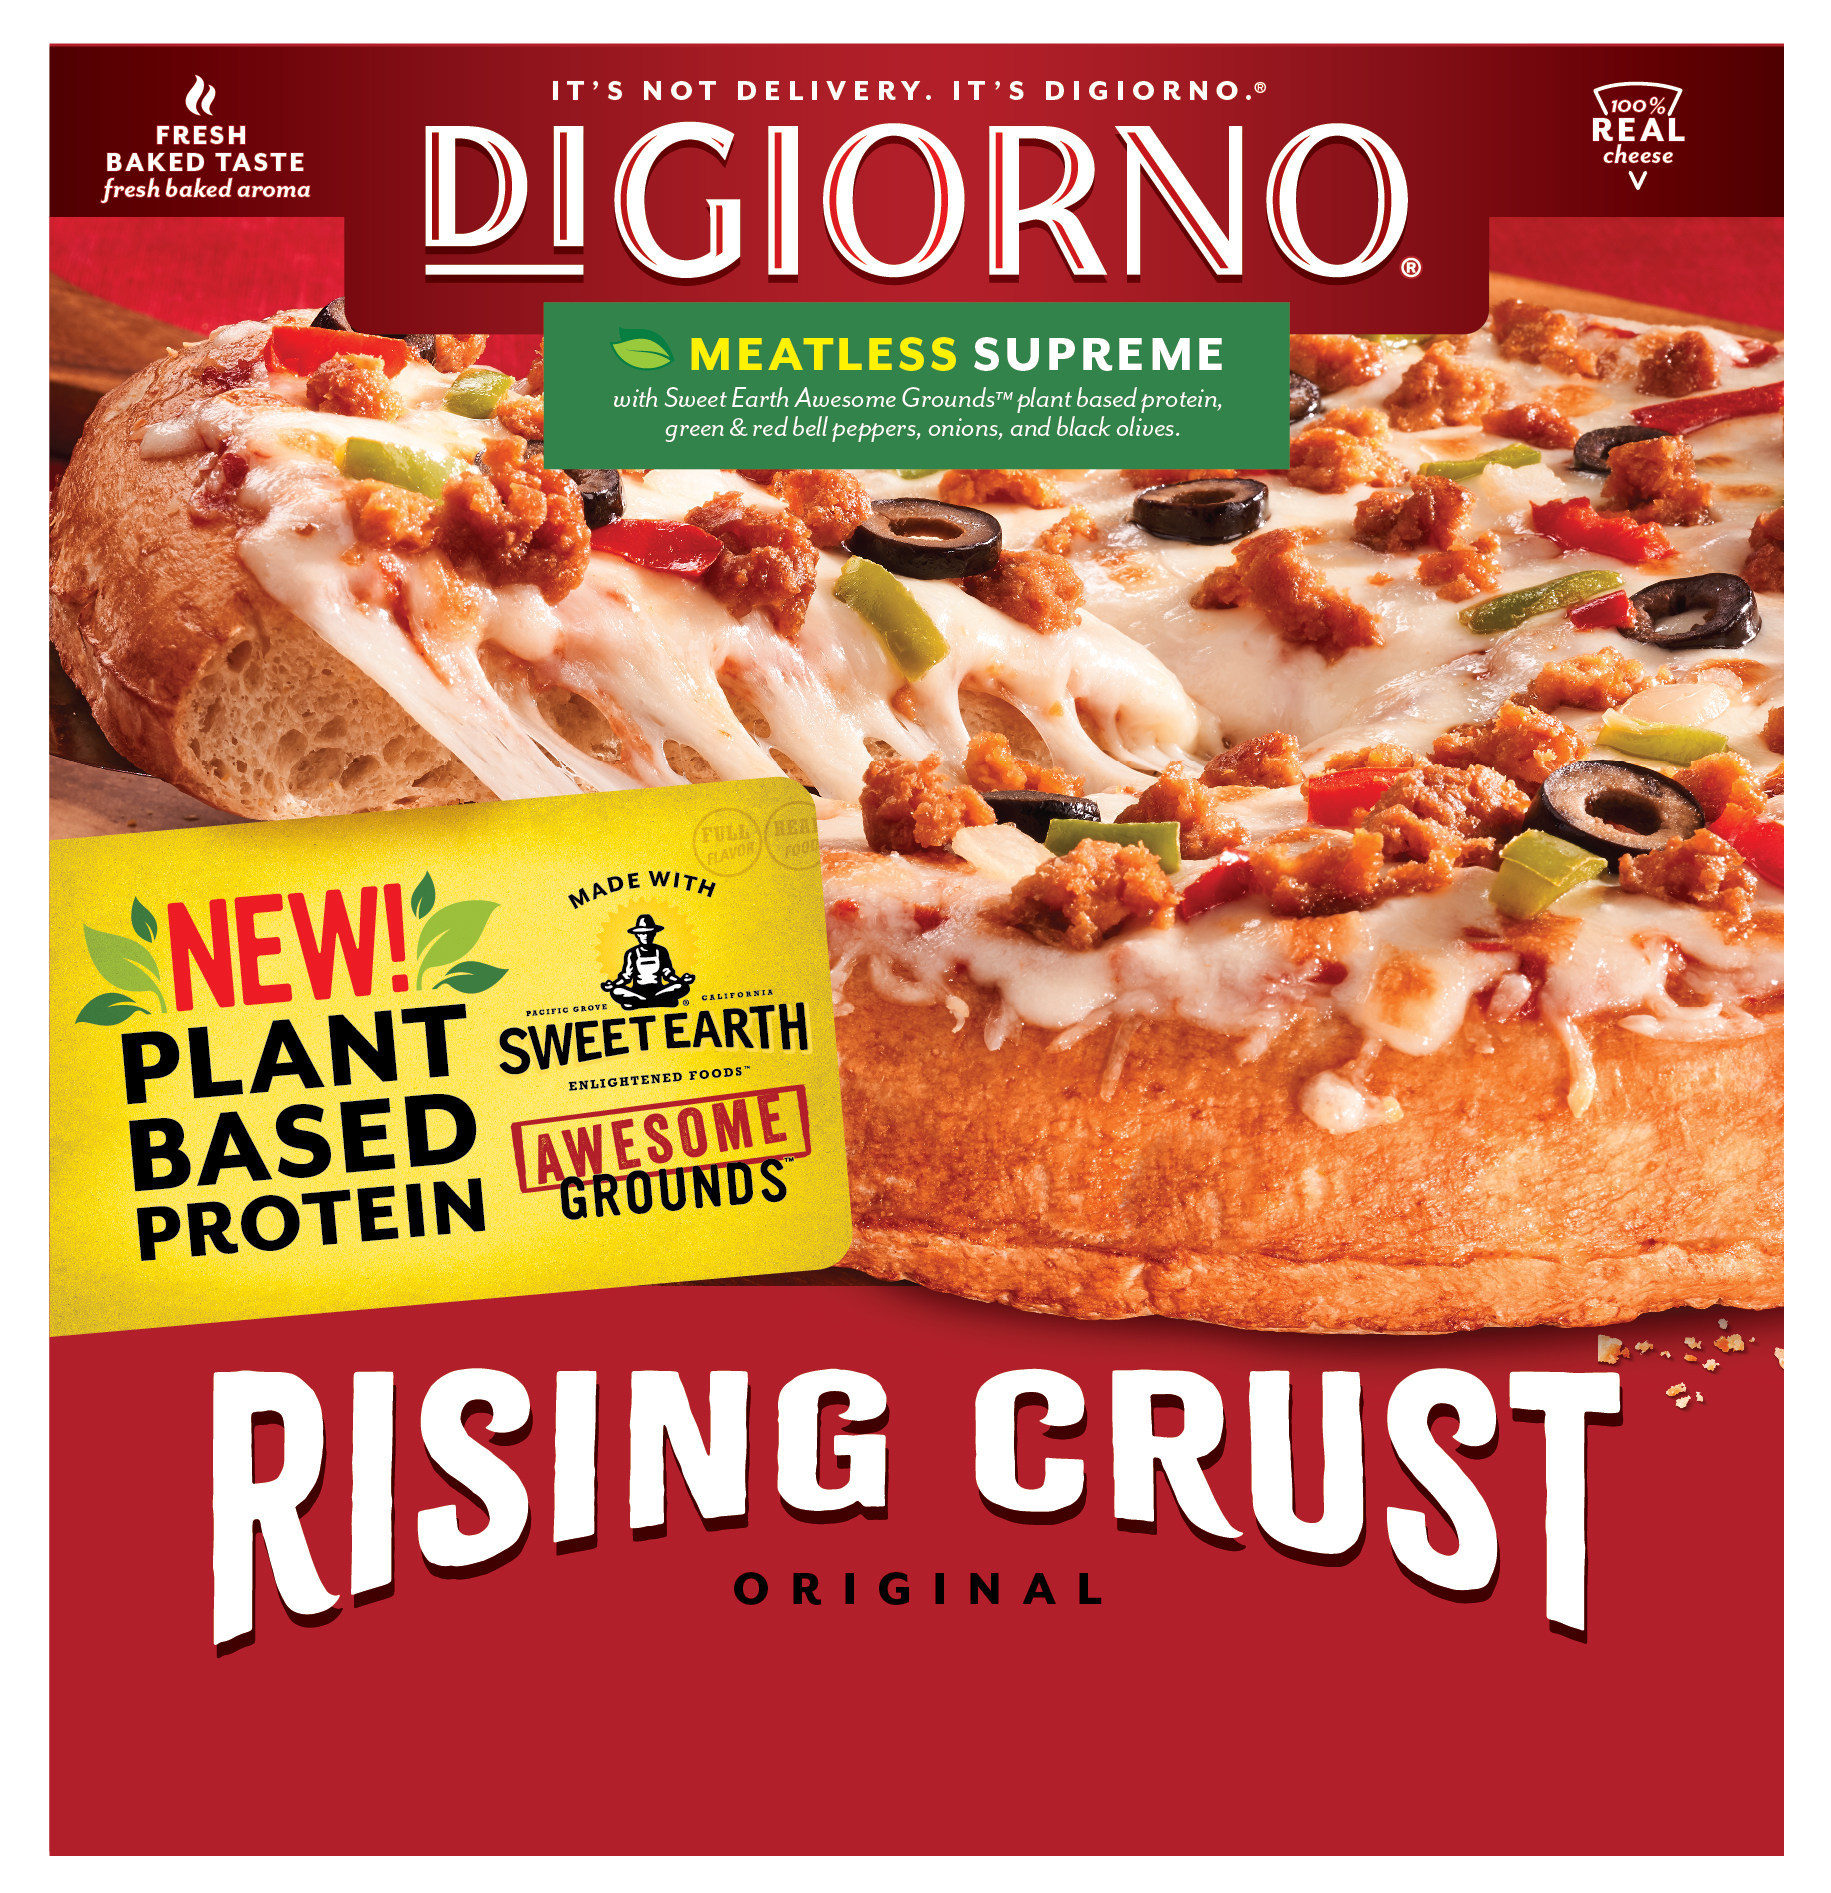 DIGIORNO Rising Crust Meatless Supreme with SWEET EARTH Awesome Grounds.